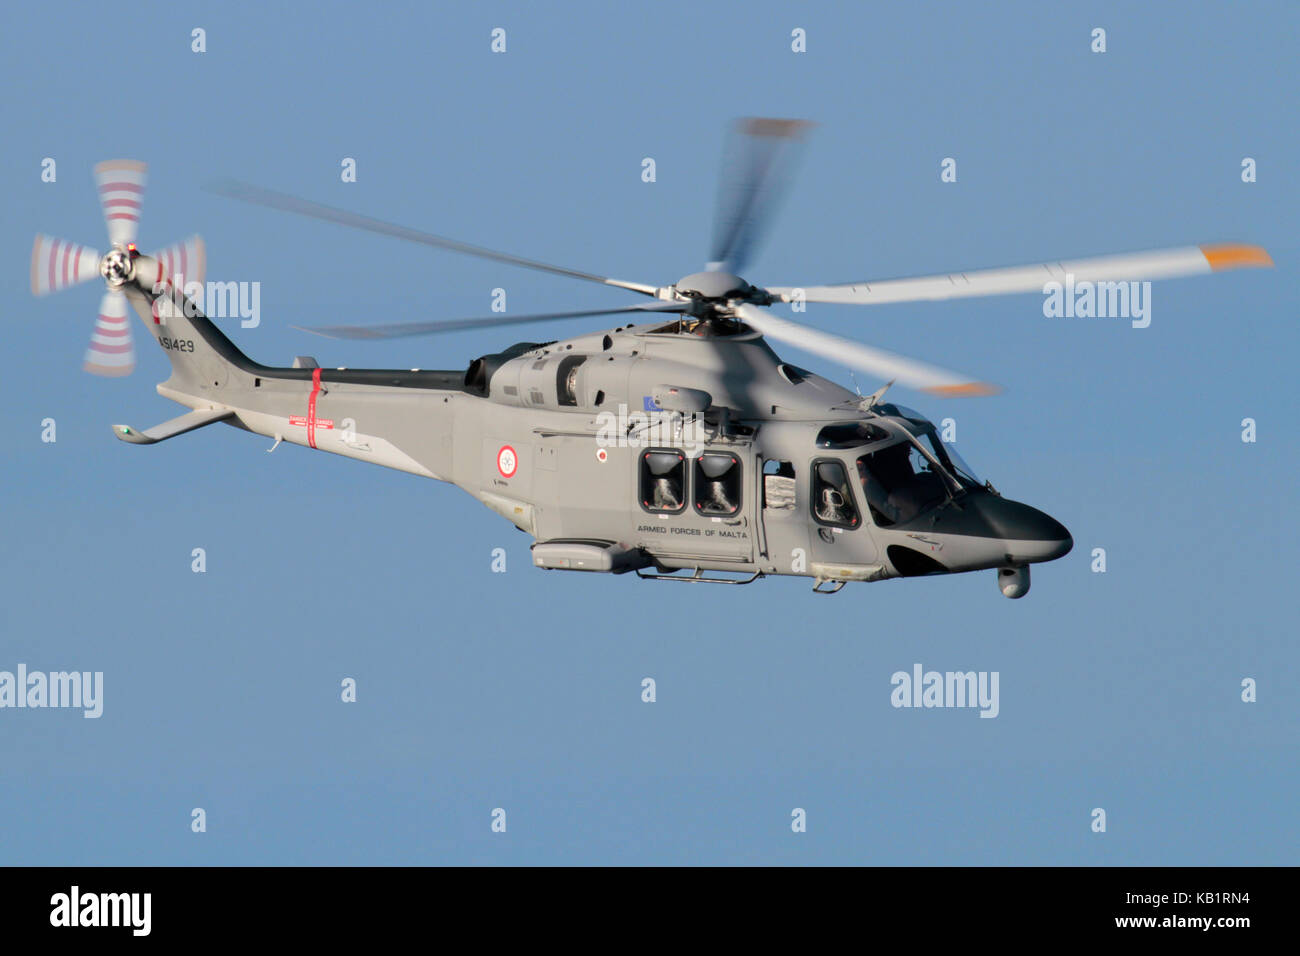 AgustaWestland AW139 maritime patrol and search and rescue helicopter of the Armed Forces of Malta in flight - Stock Image